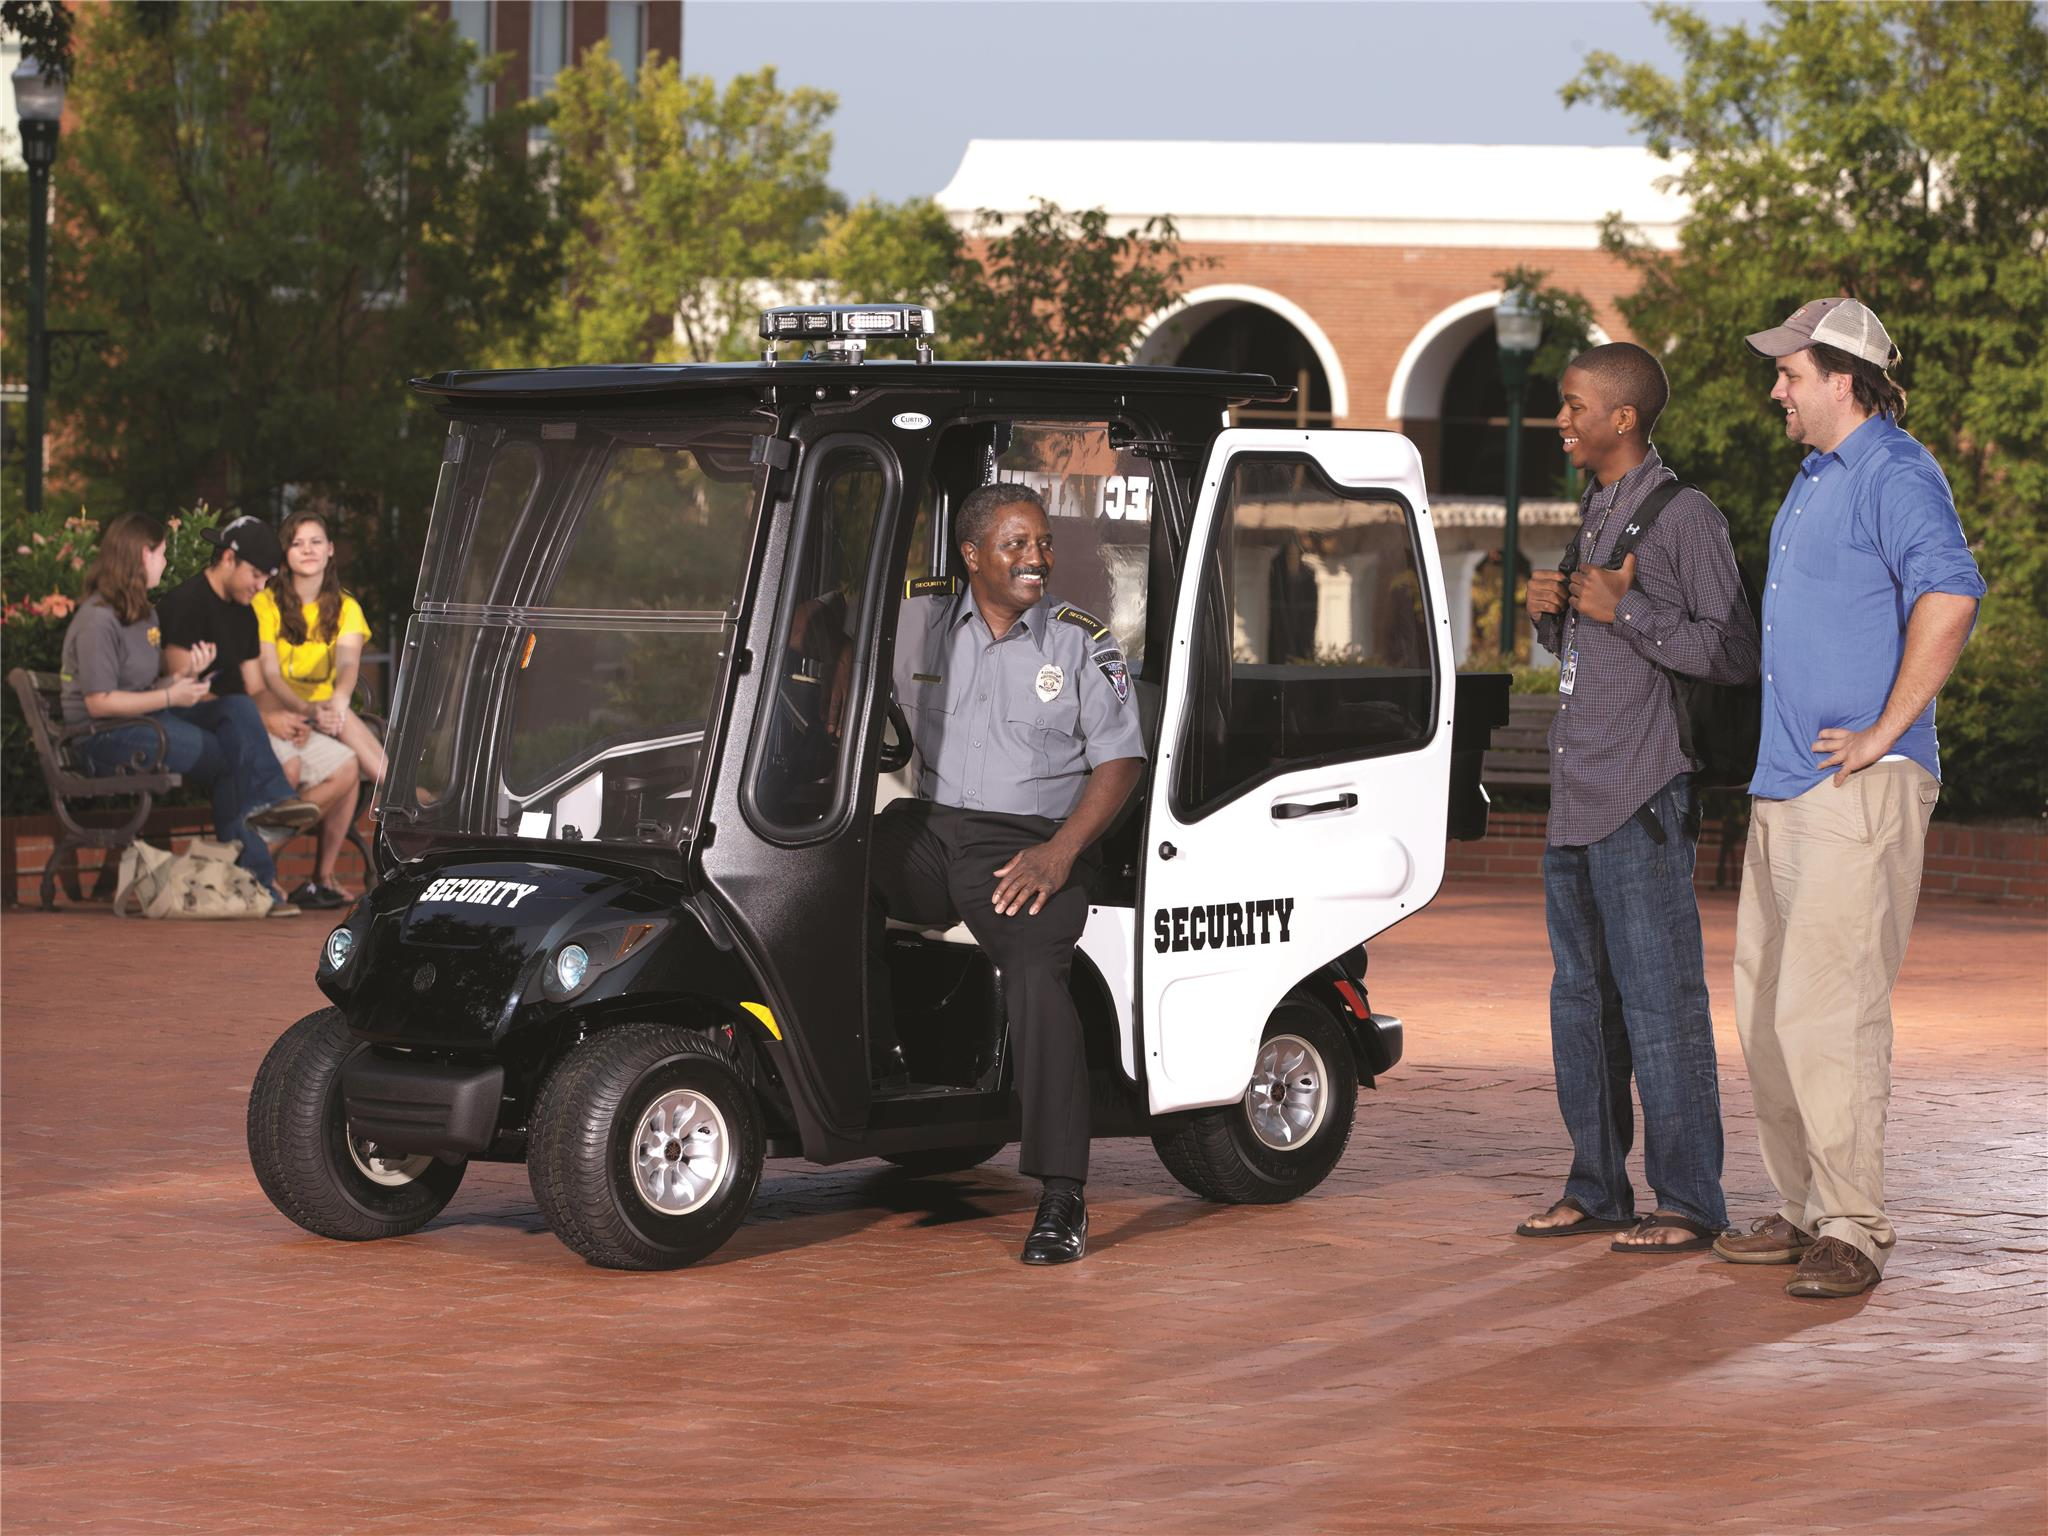 Commercial Security - Yamaha Golf Car on